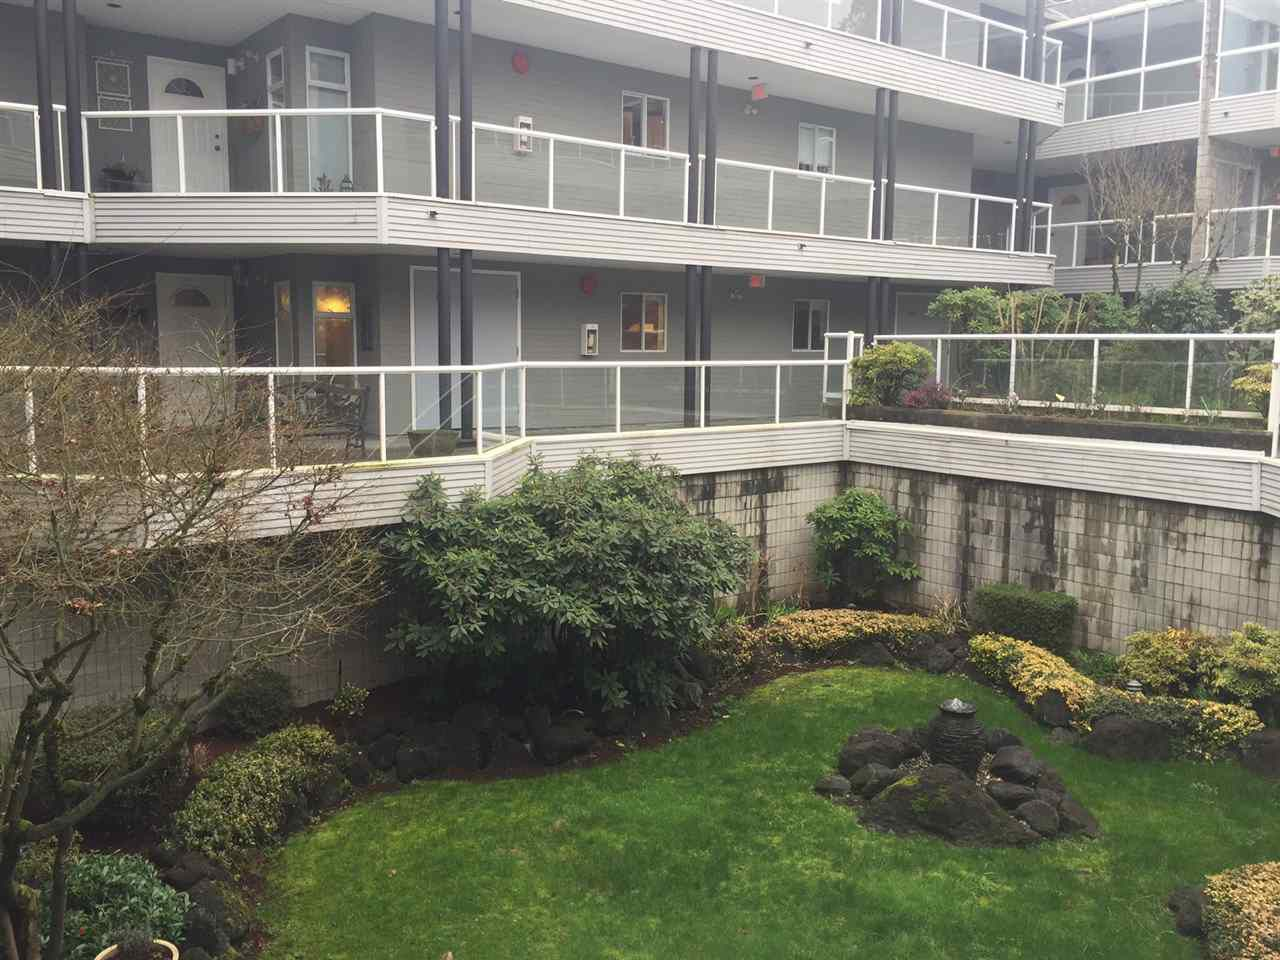 Main Photo: 204 2733 ATLIN Place in Coquitlam: Coquitlam East Condo for sale : MLS®# R2046230